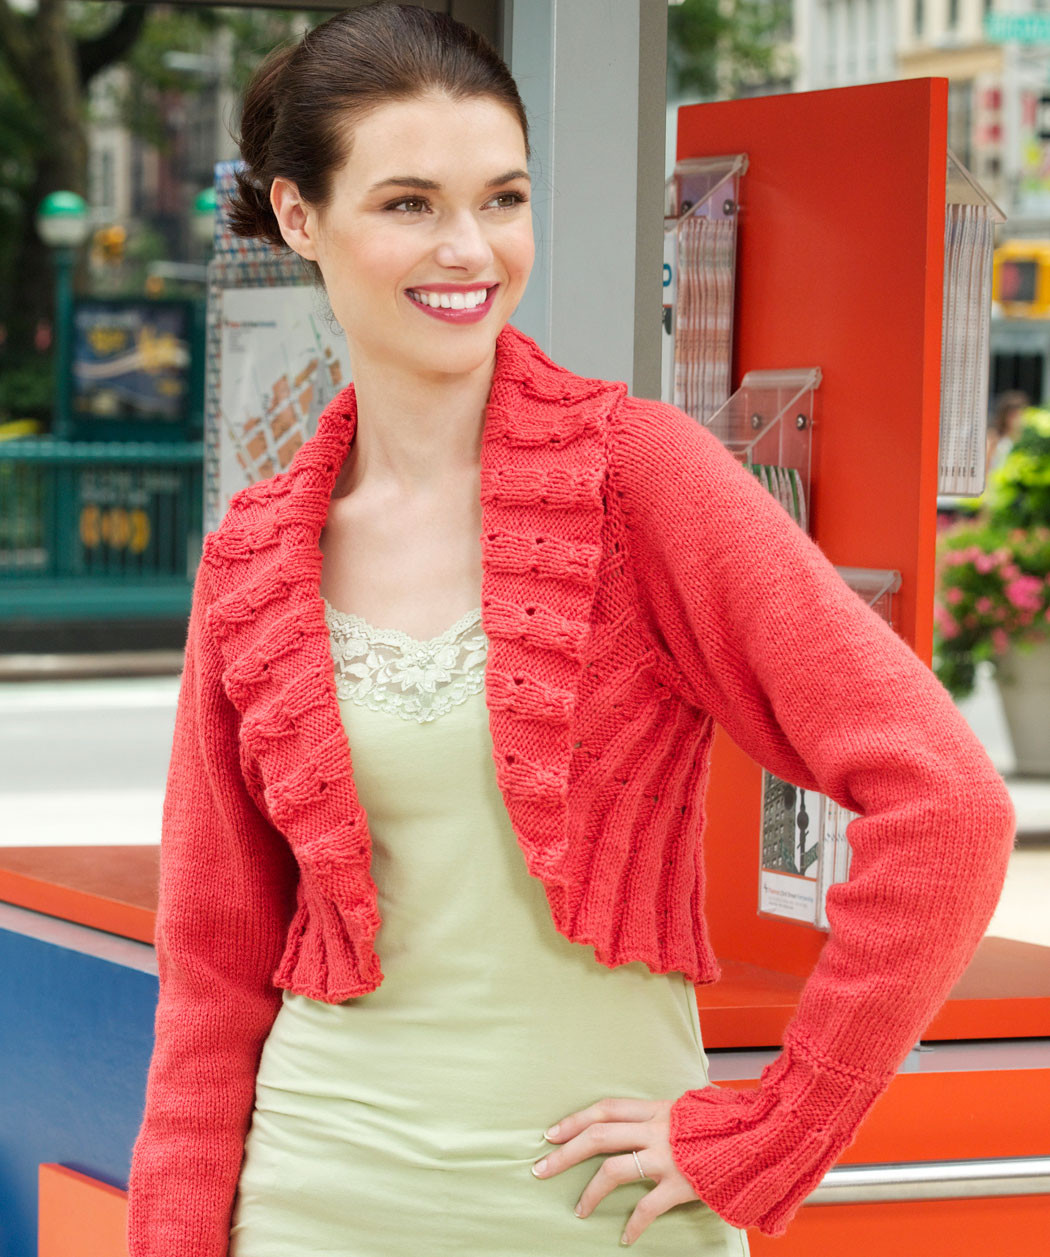 Best Of Knit Shrug Pattern Red Heart Free Knitting Patterns Of Unique 34 Models Red Heart Free Knitting Patterns